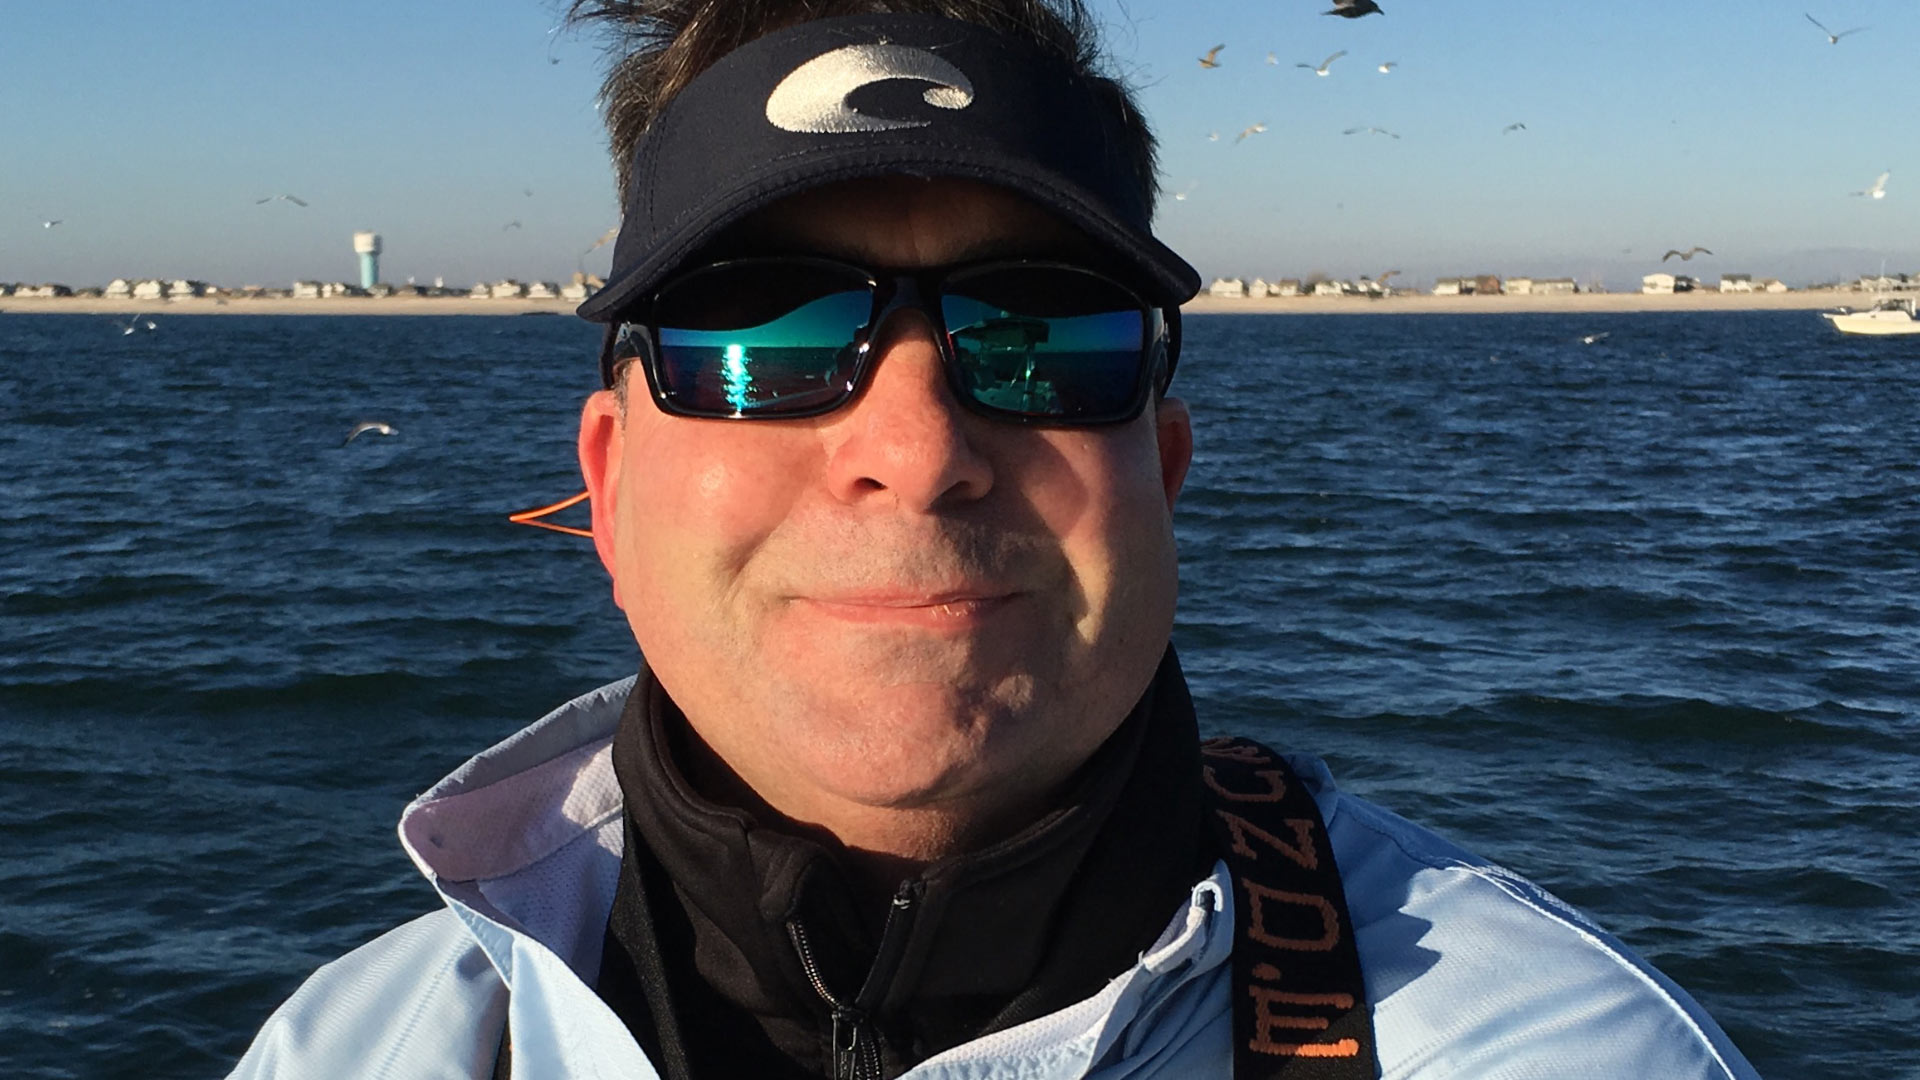 Webinar: Striper Tactics - Dialing Up the Bite with Your Electronics